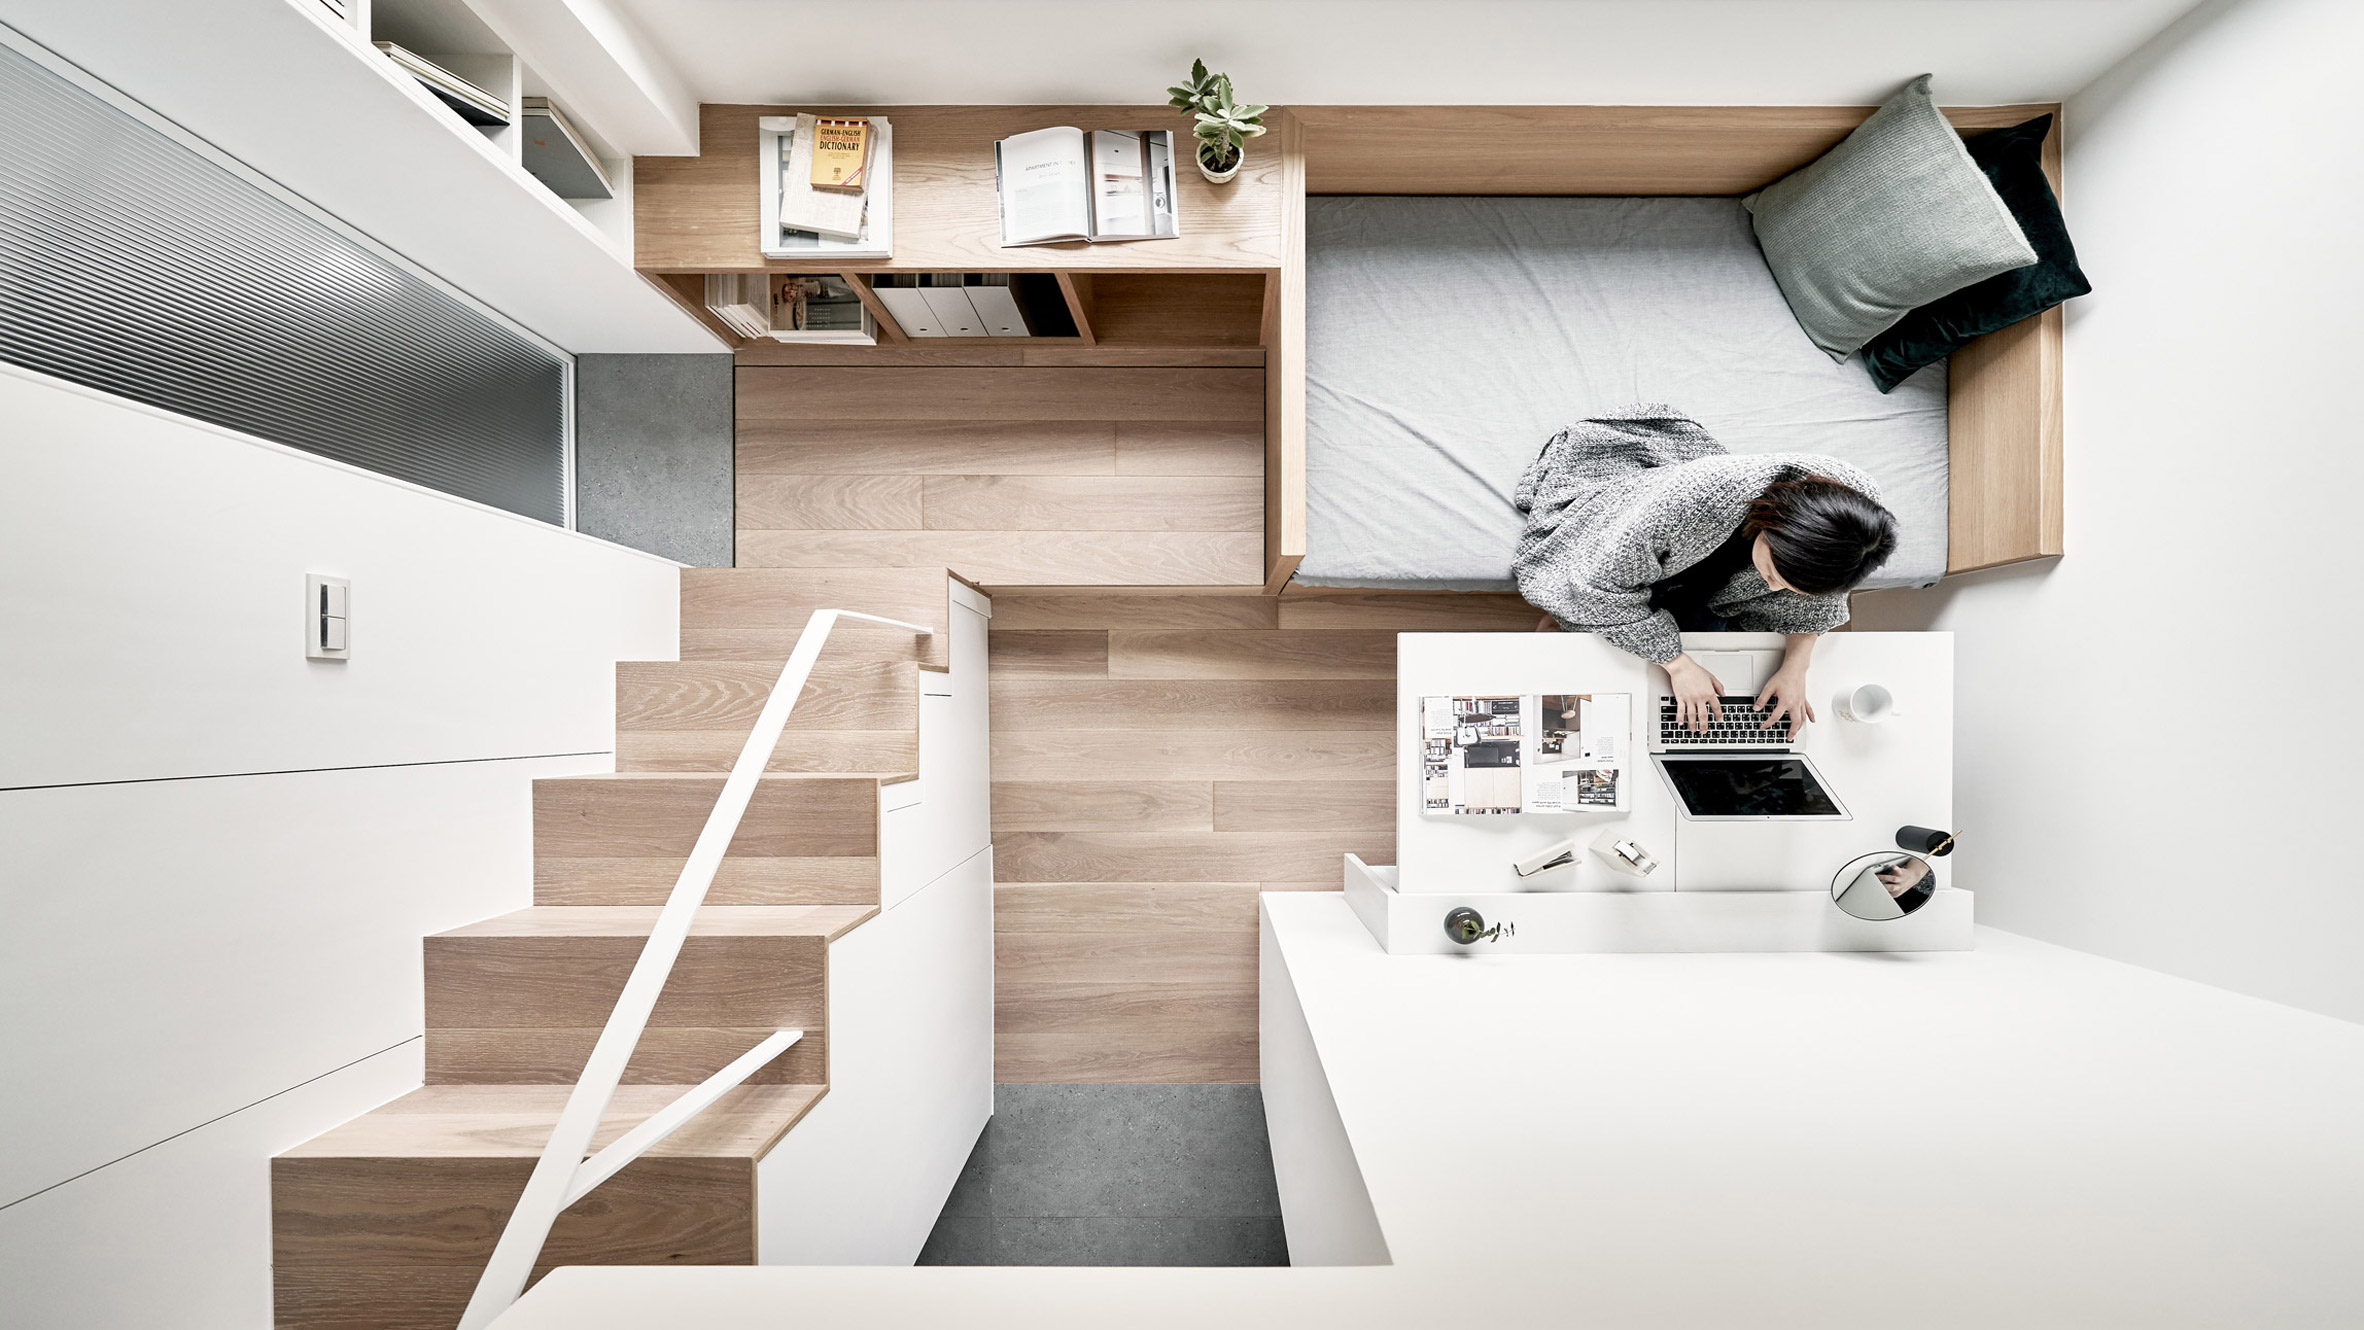 Ingenious 189-square-foot apartment has everything you need